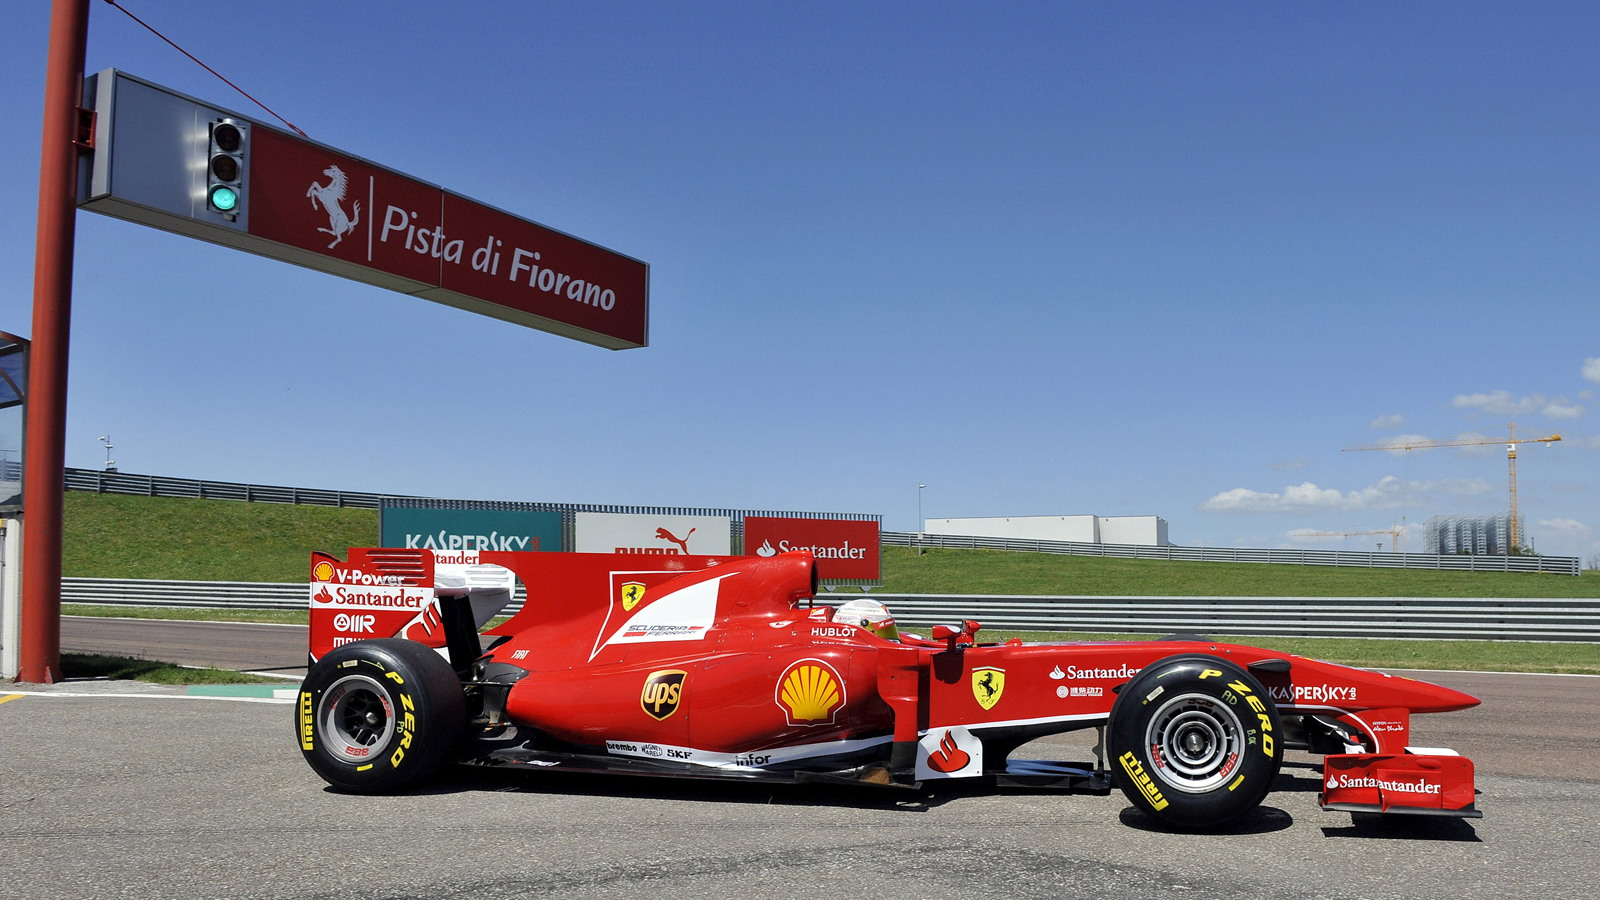 Kamui Kobayashi tests Ferrari's 2010 F1 car at Fiorano